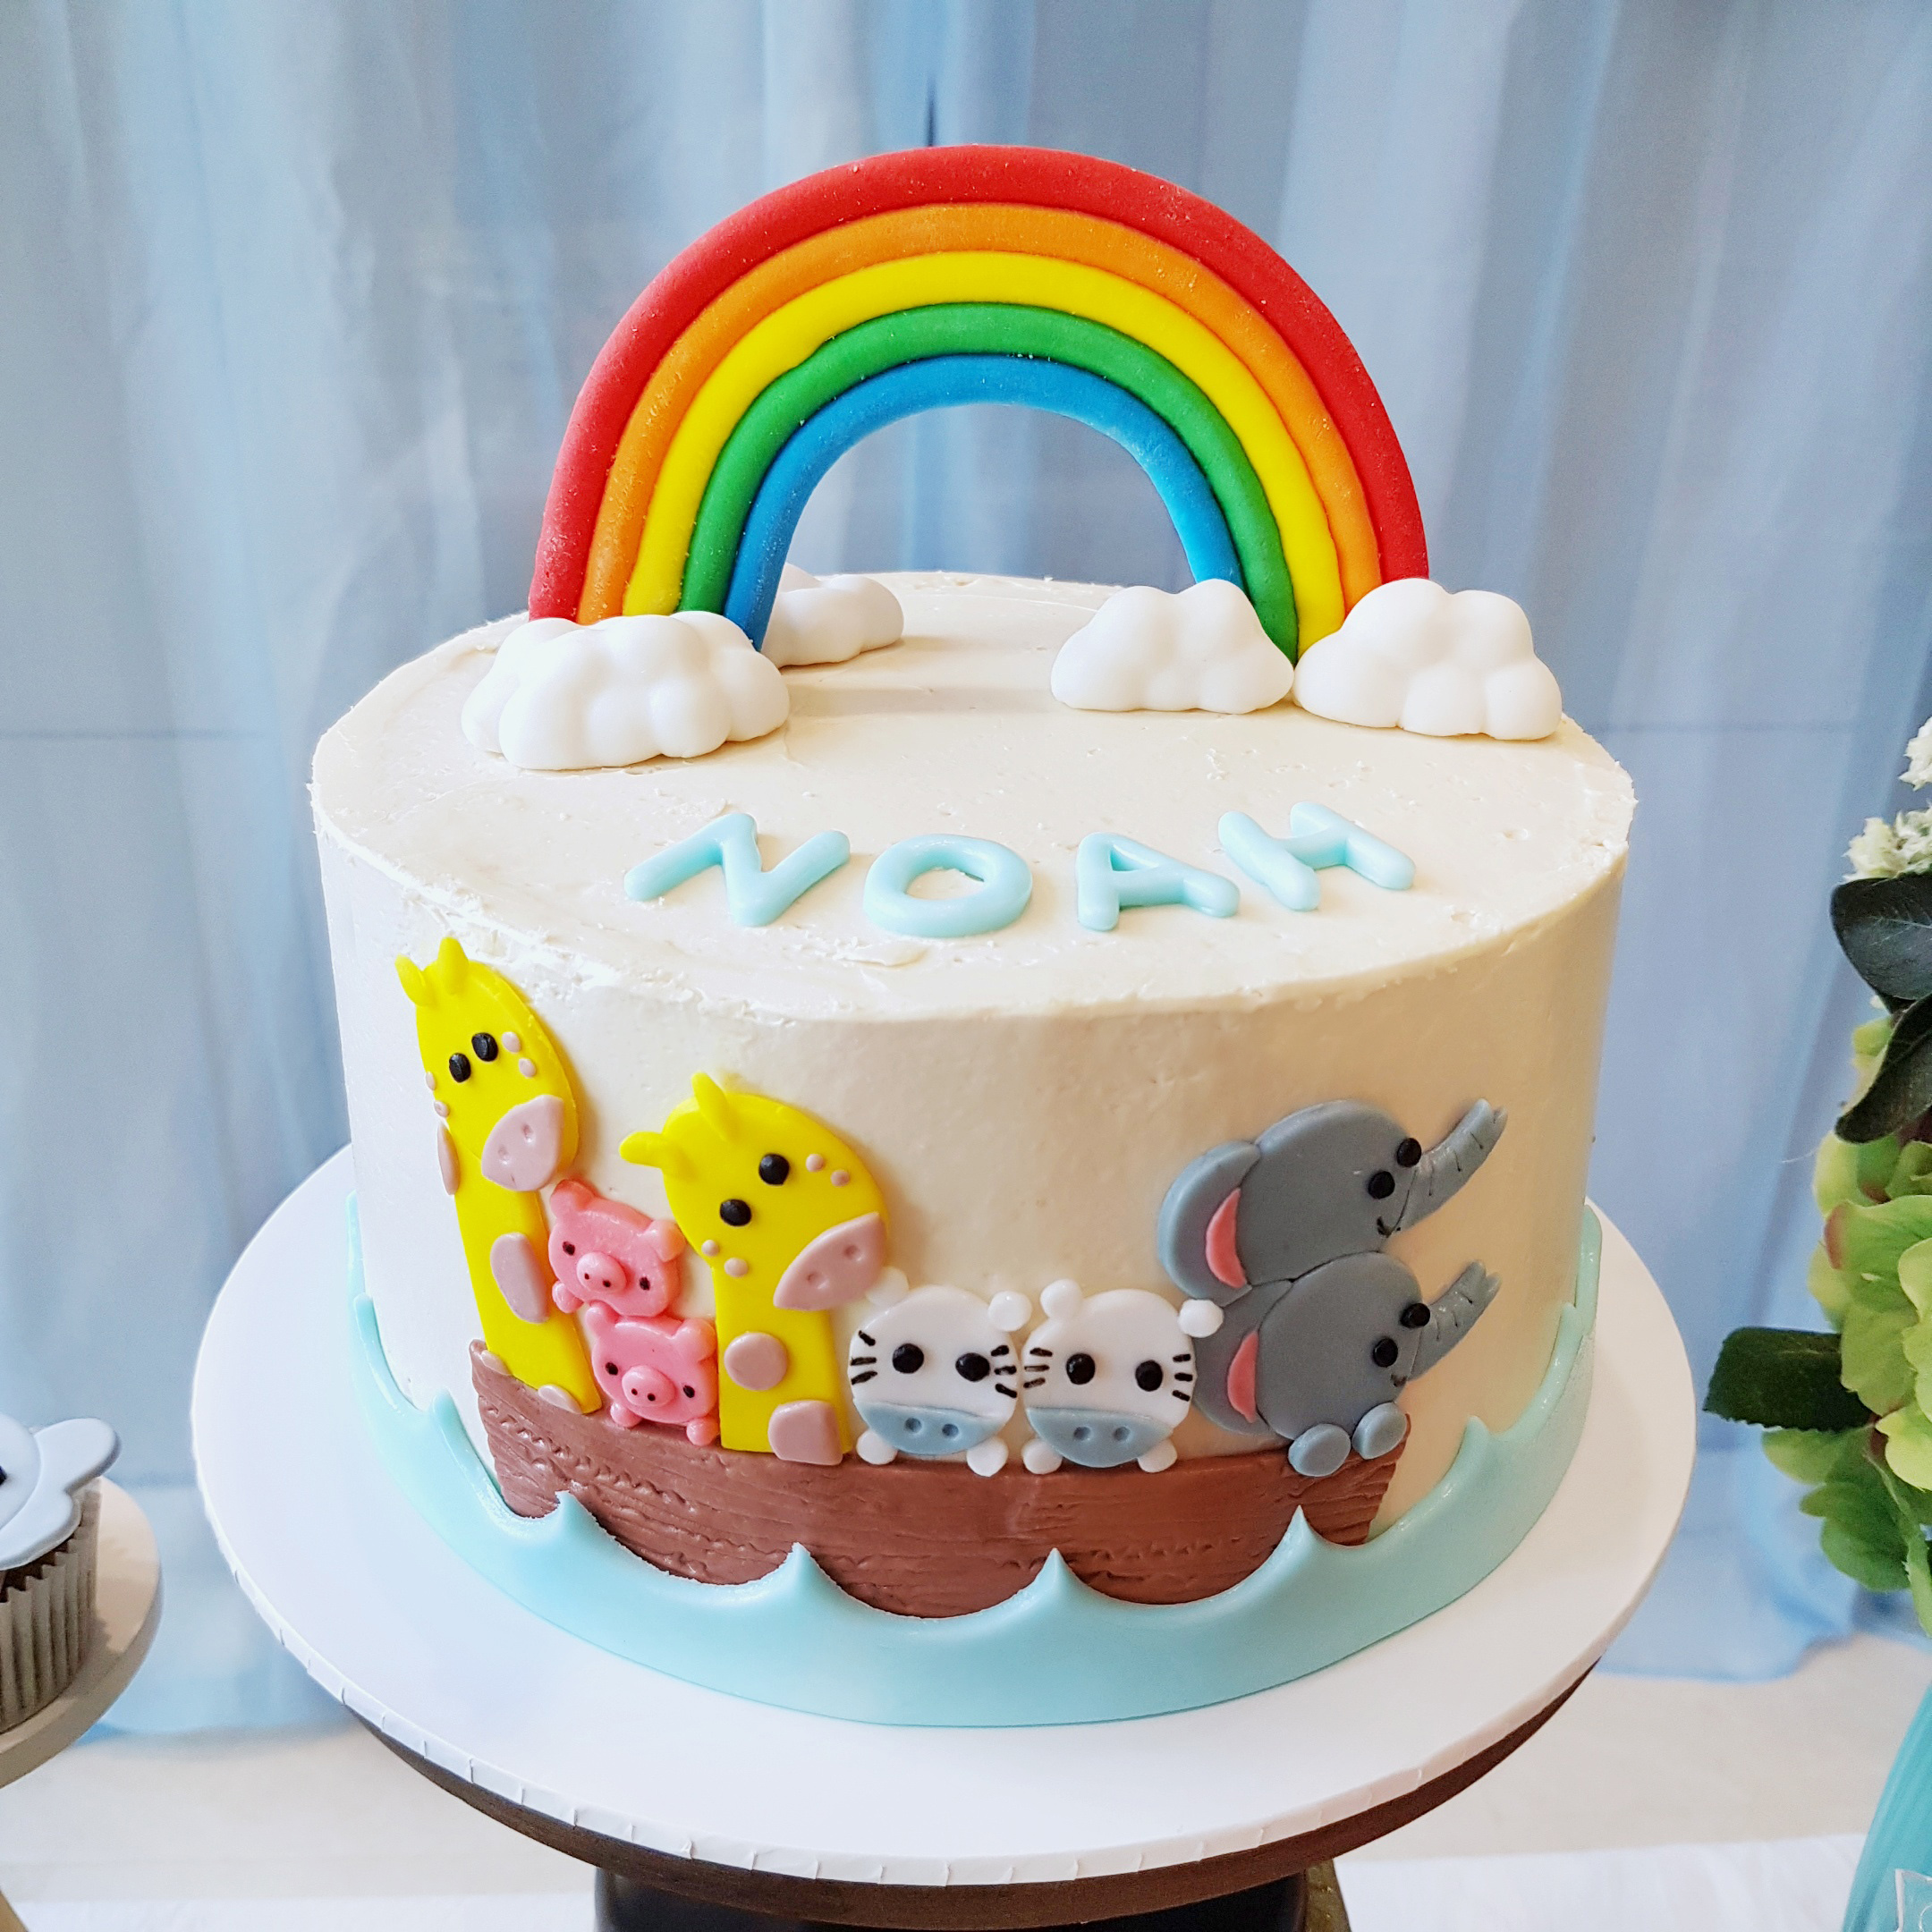 Noah's Ark Cake by The Baking Experiment